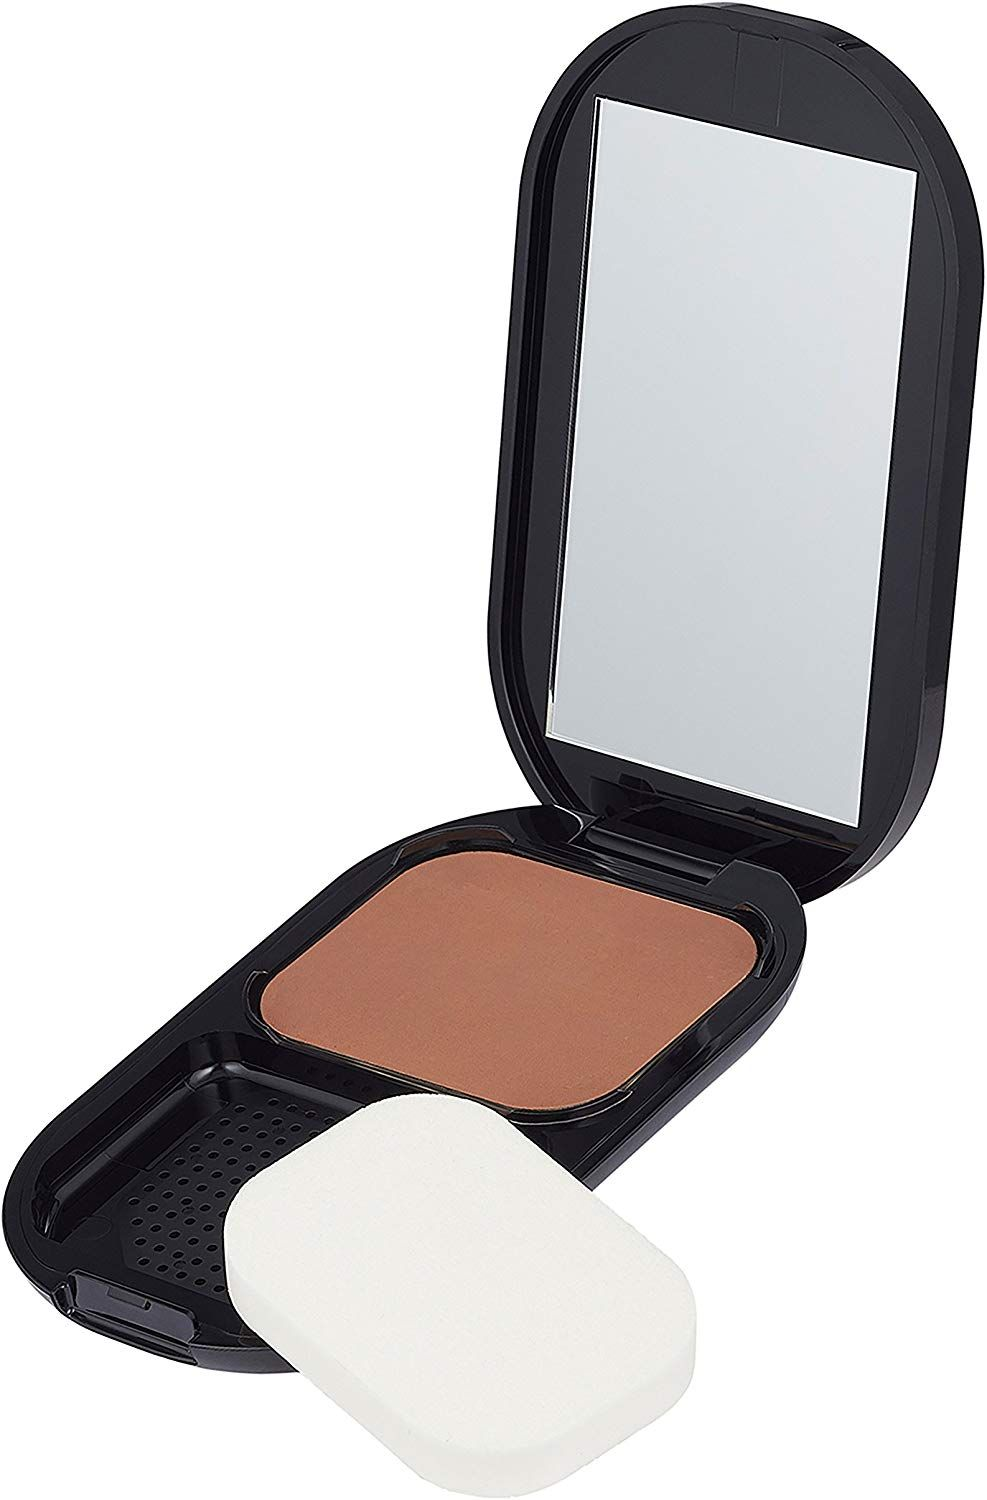 New Max Factor Facefinity Compact Foundation SPF20 - 10 Soft Sable